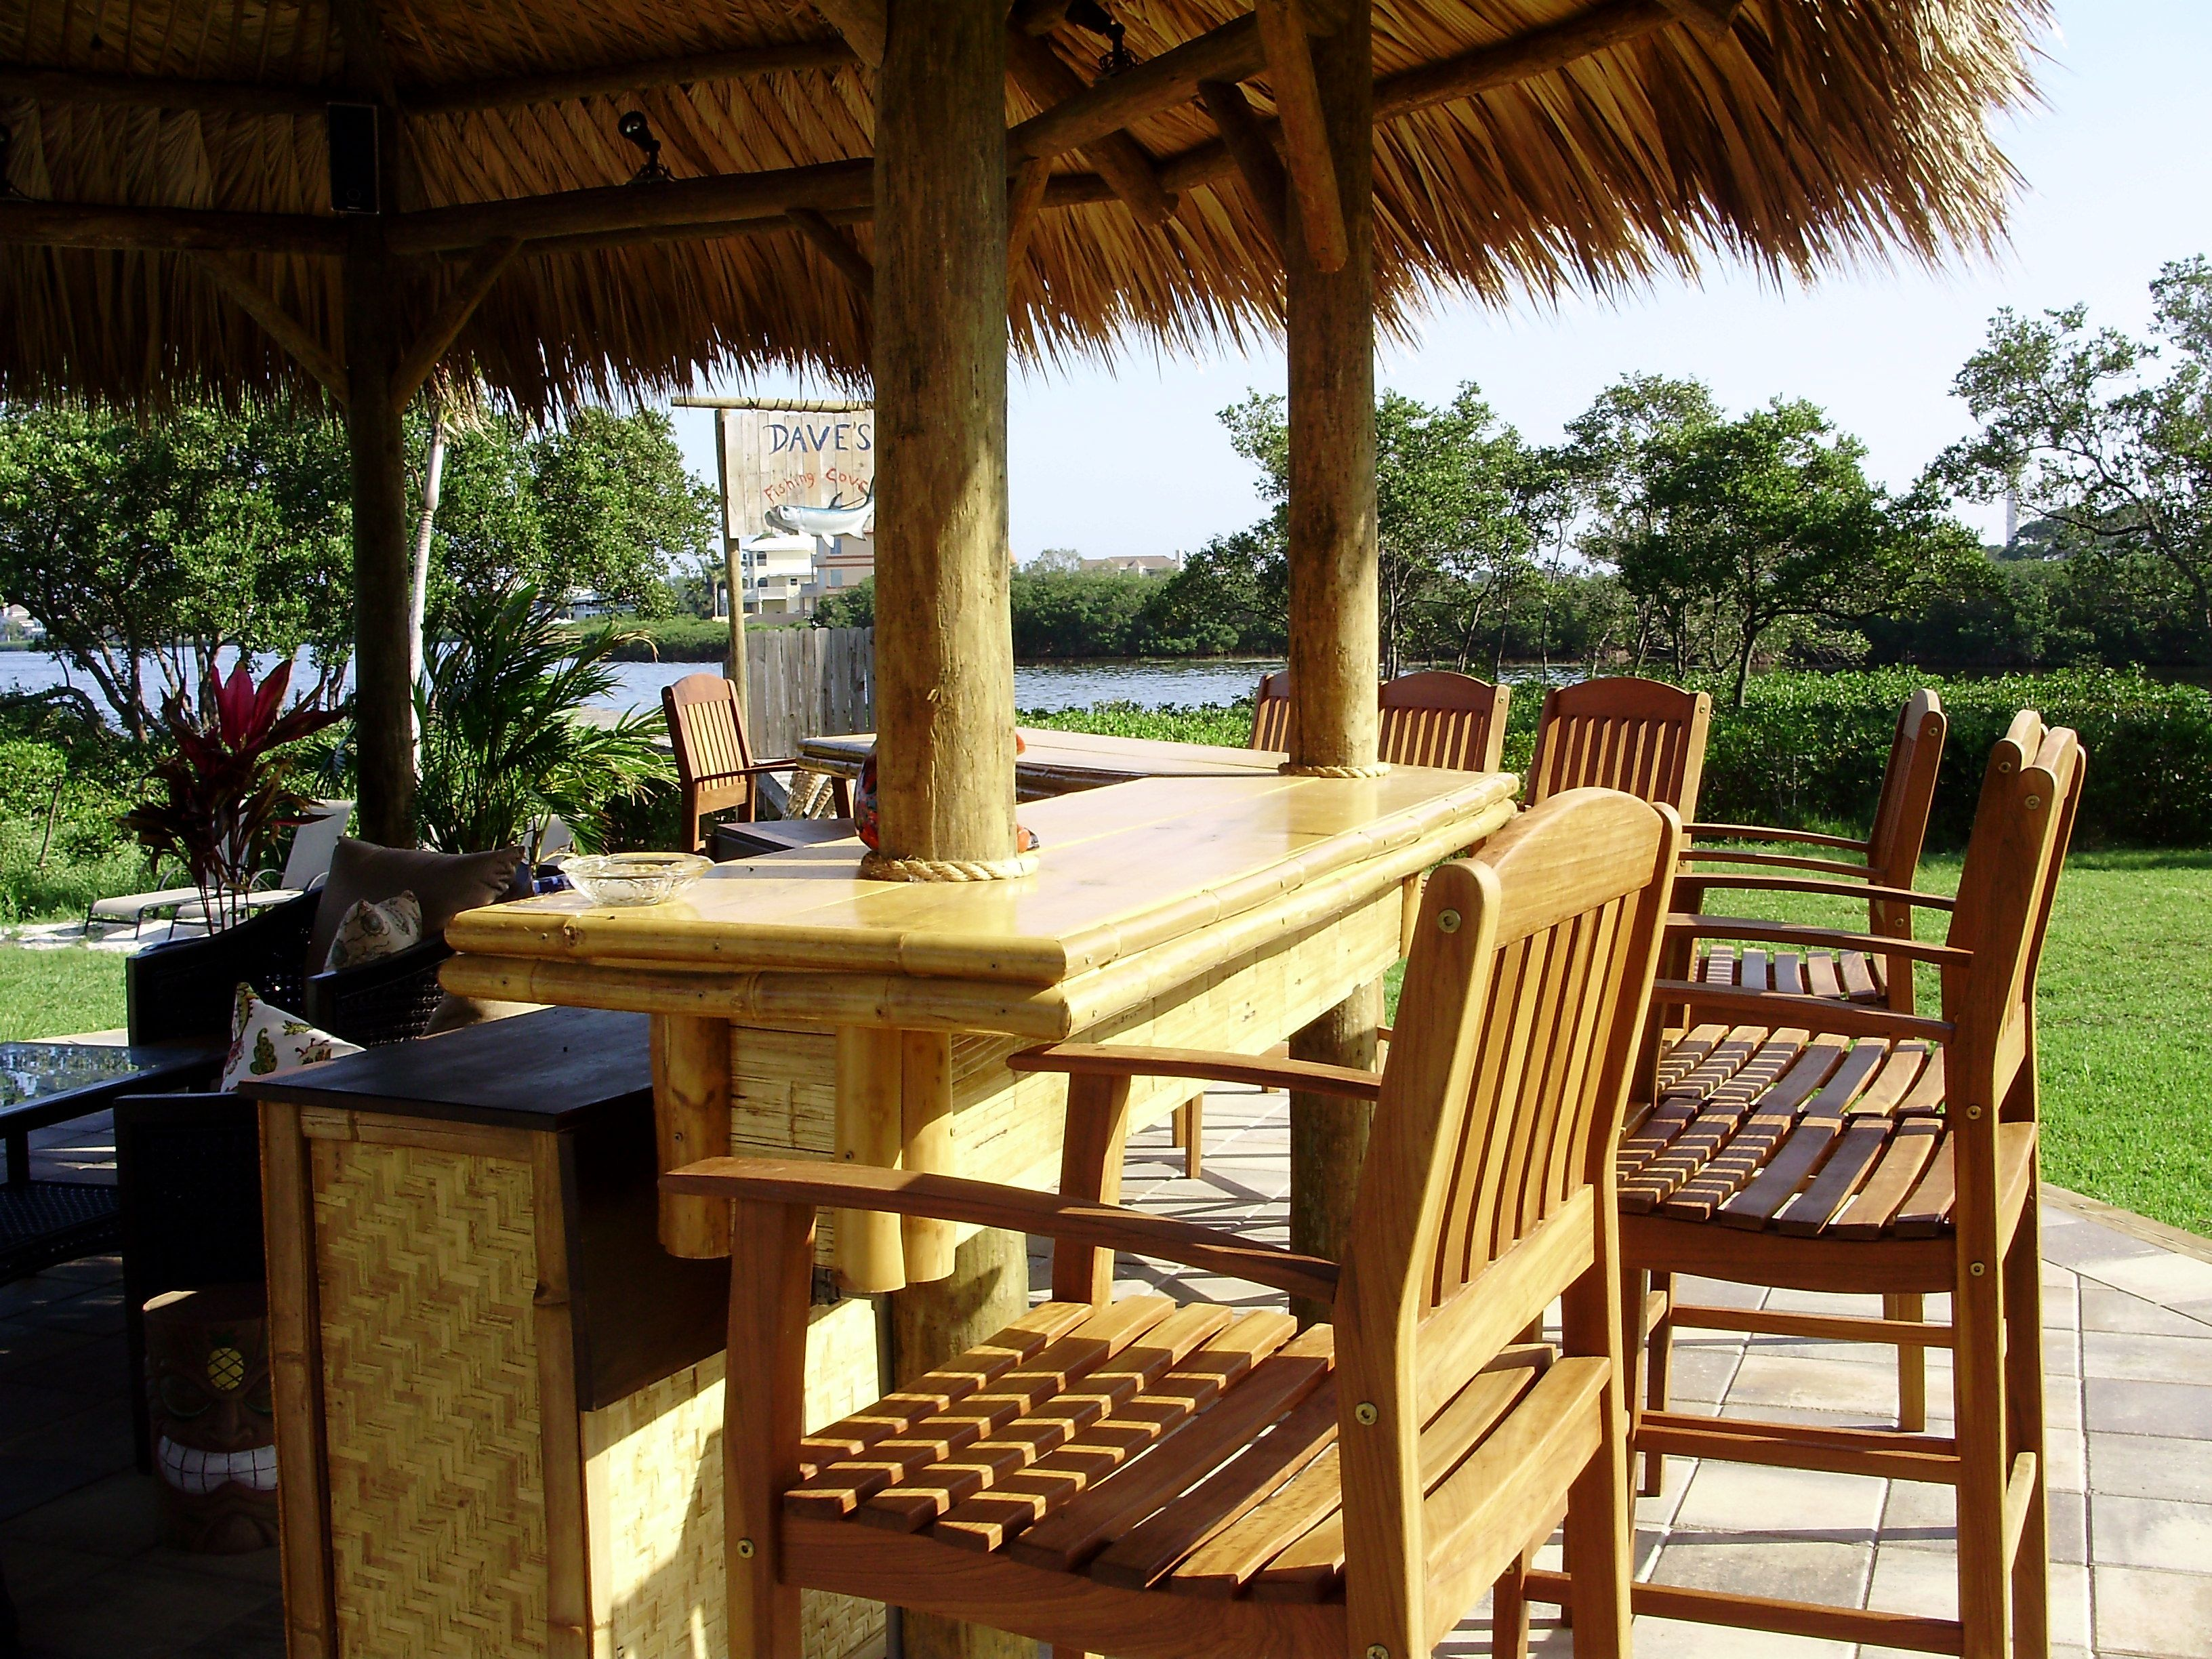 20 39 permanent tiki hut gazebo style with a palm thatch roof and a heavy weave bamboo bar - Bamboo bar design ideas ...